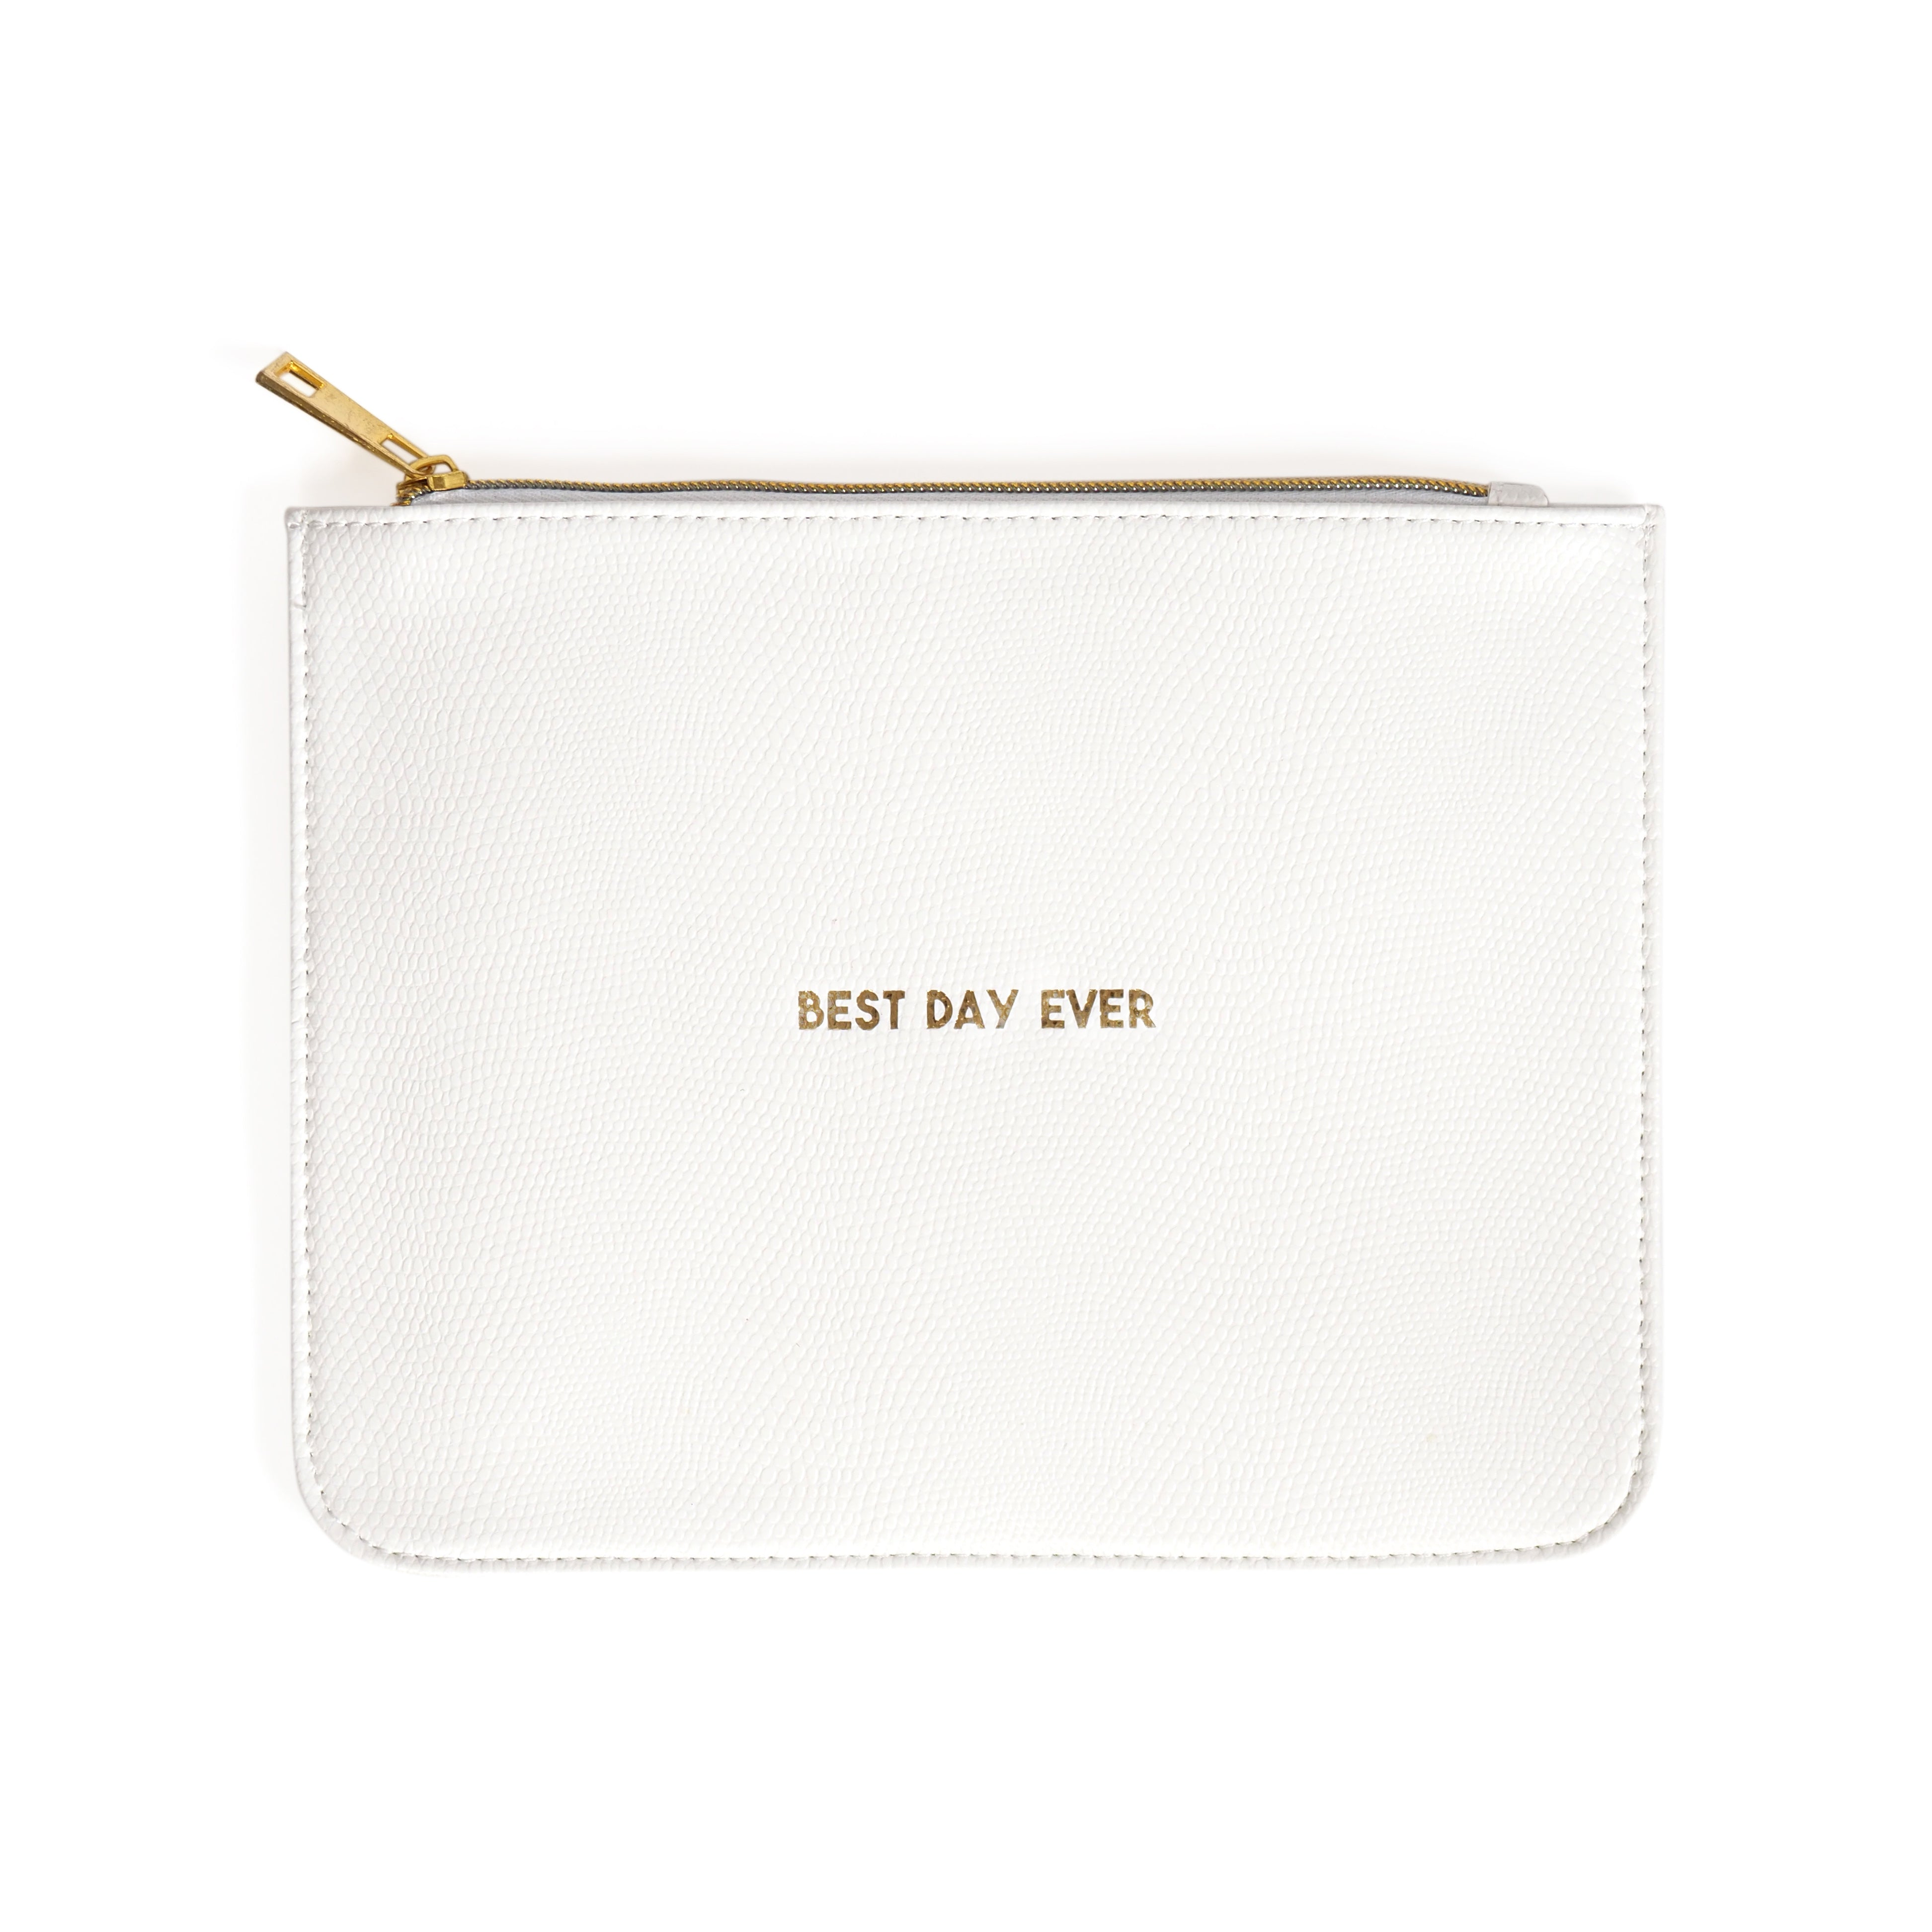 Best Day Ever Leatherette Clutch